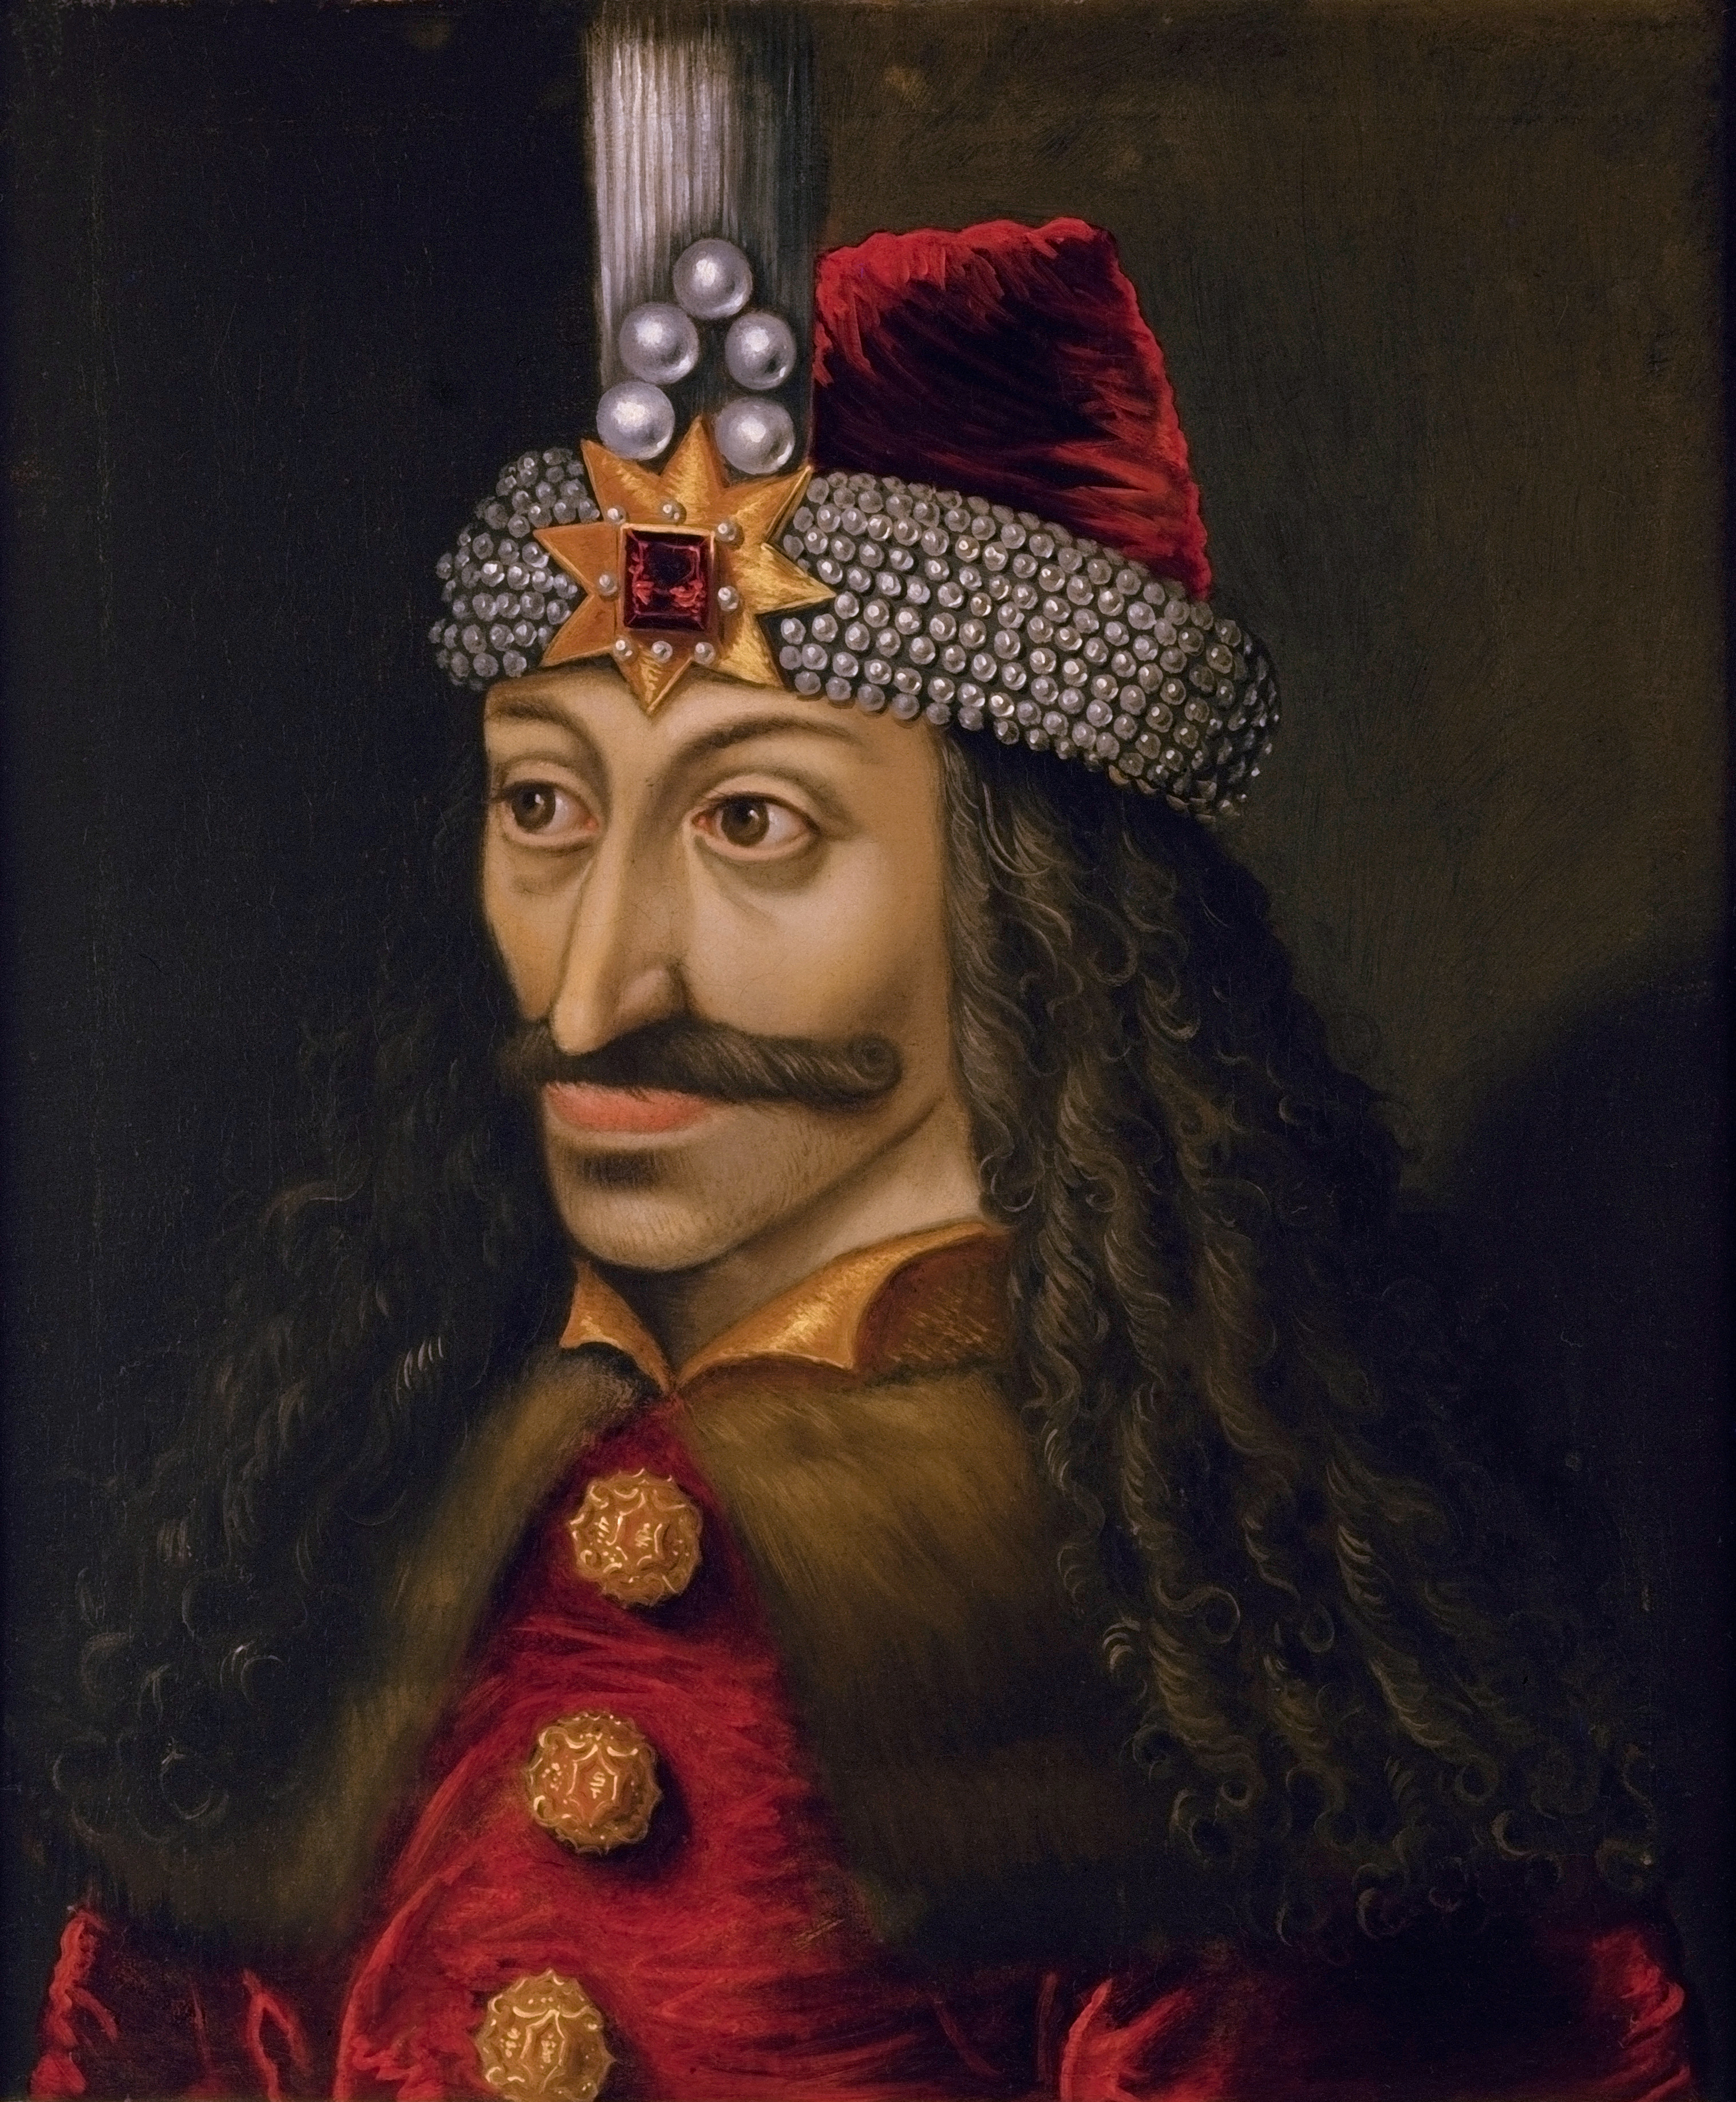 Vlad the Impaler's portrait